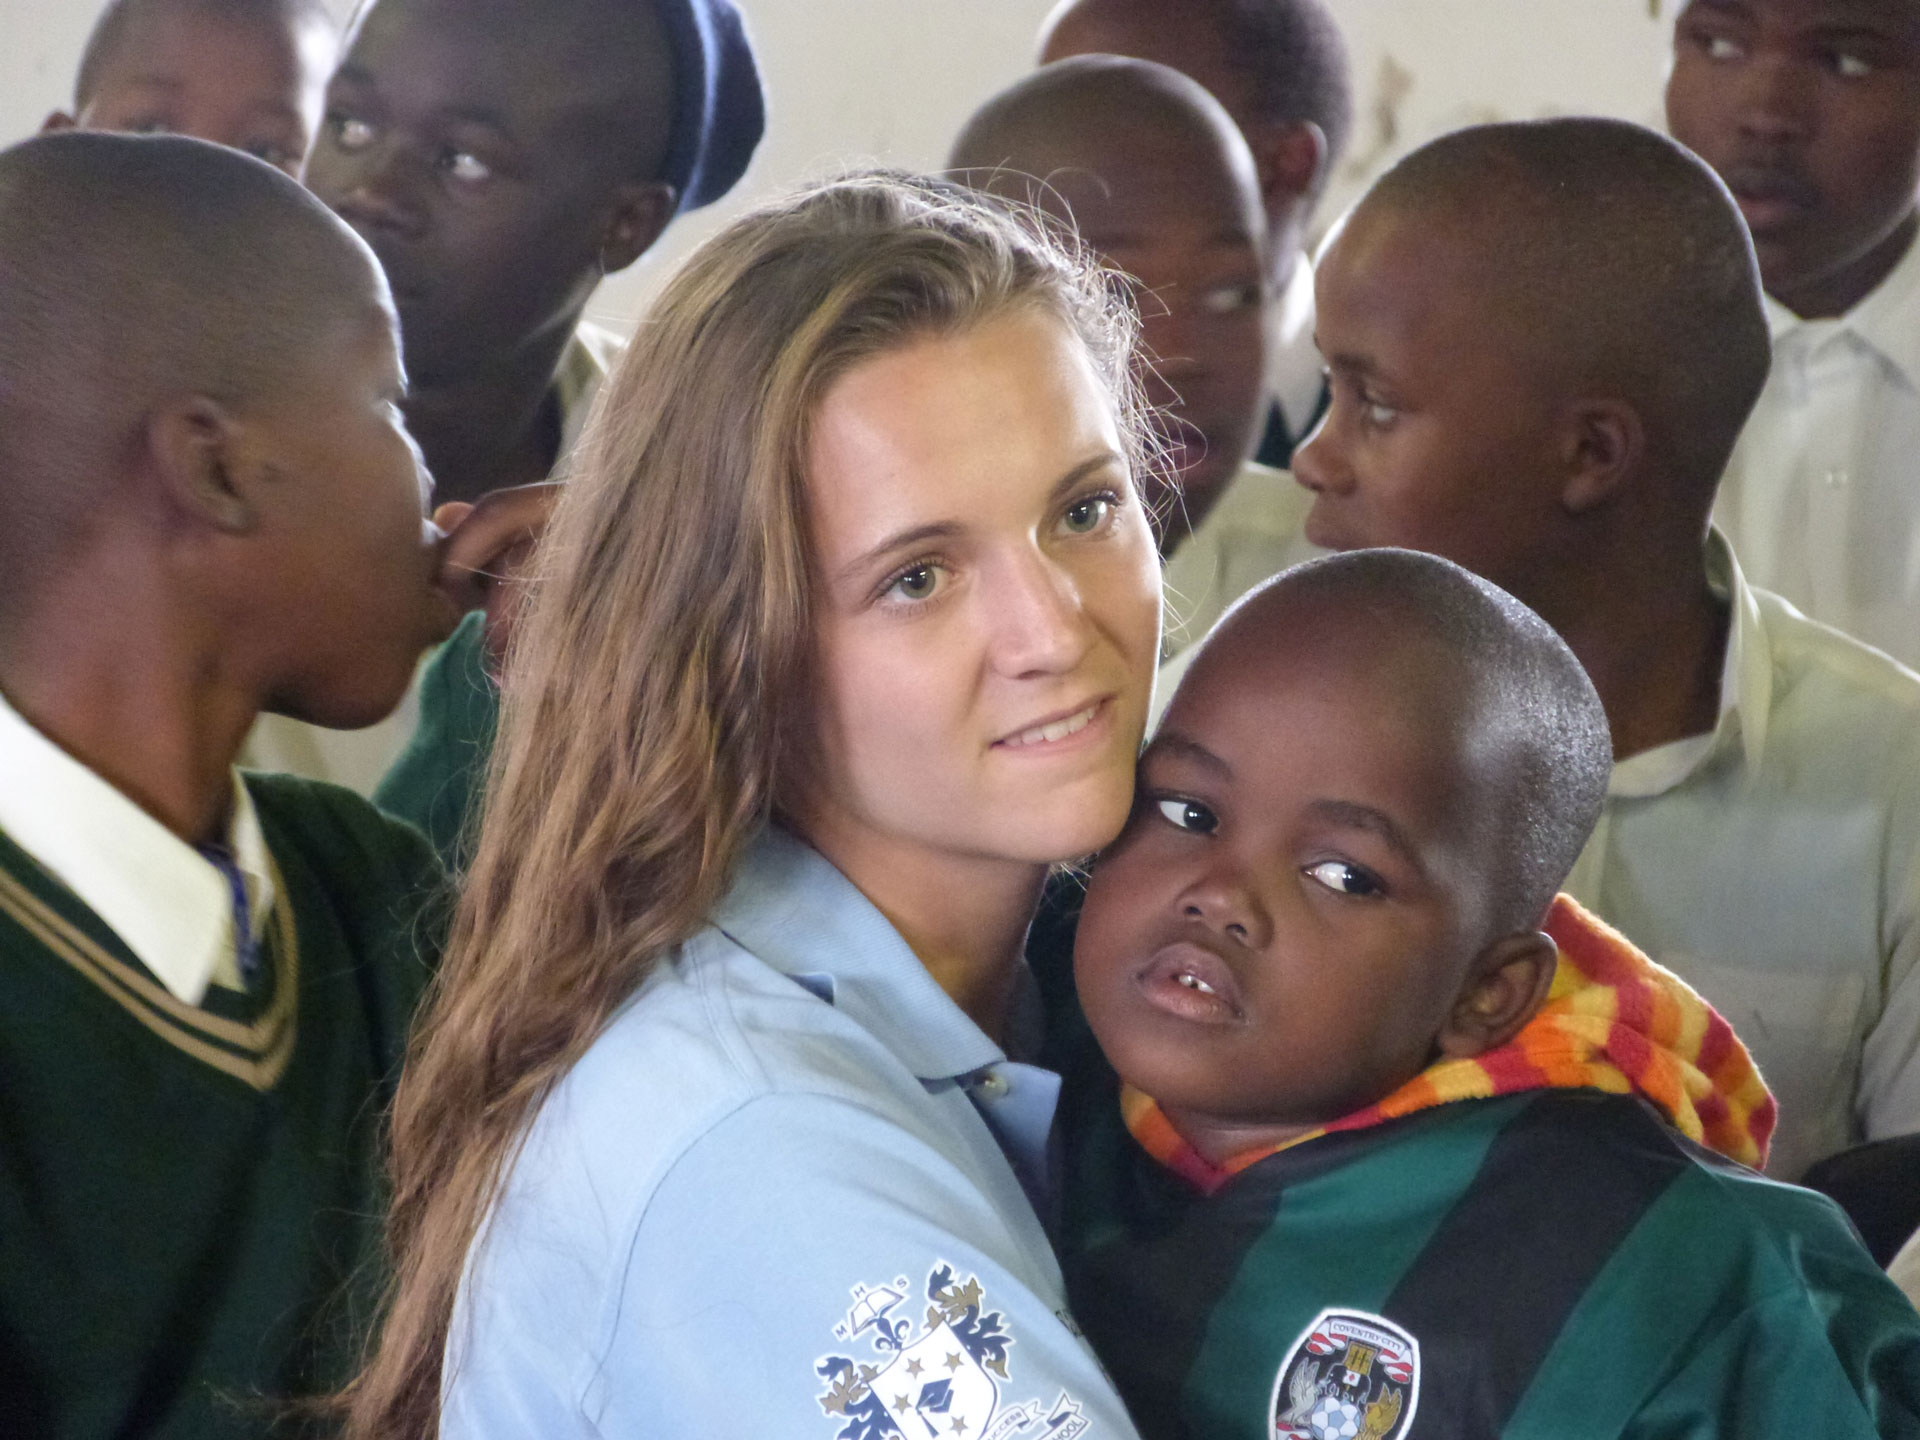 Photo: Chloe during the 2013 South Africa visit